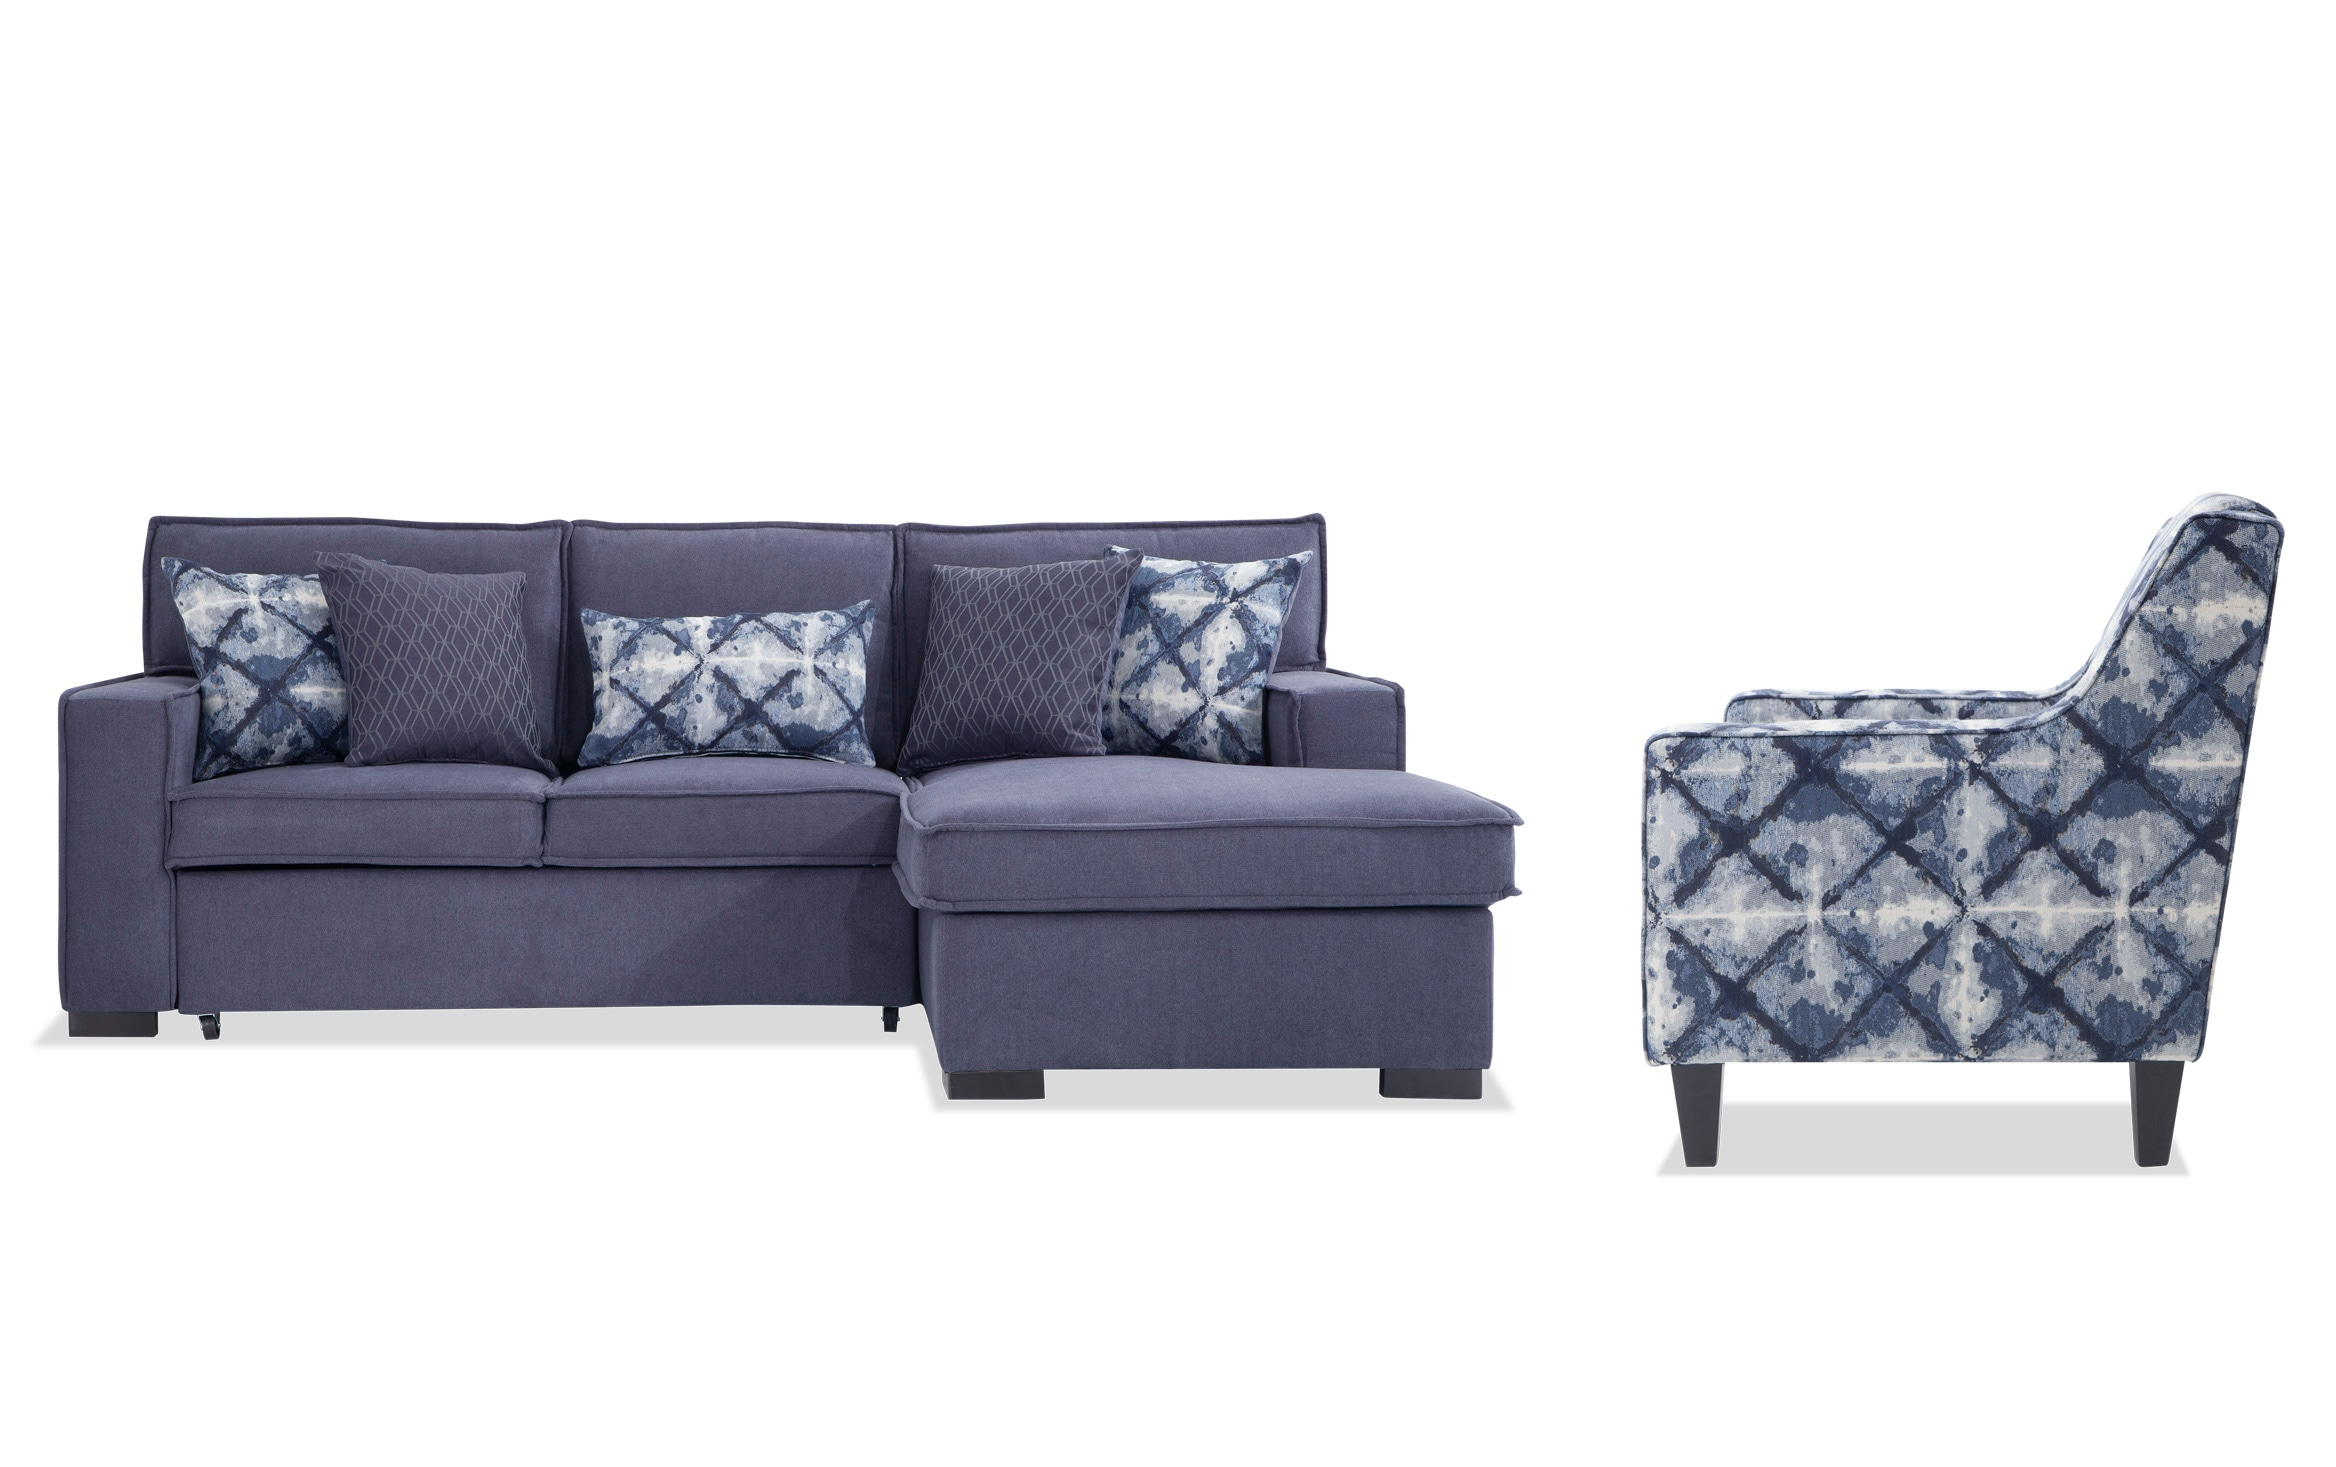 Playscape Denim Left Arm Facing Sectional with Accent Chair